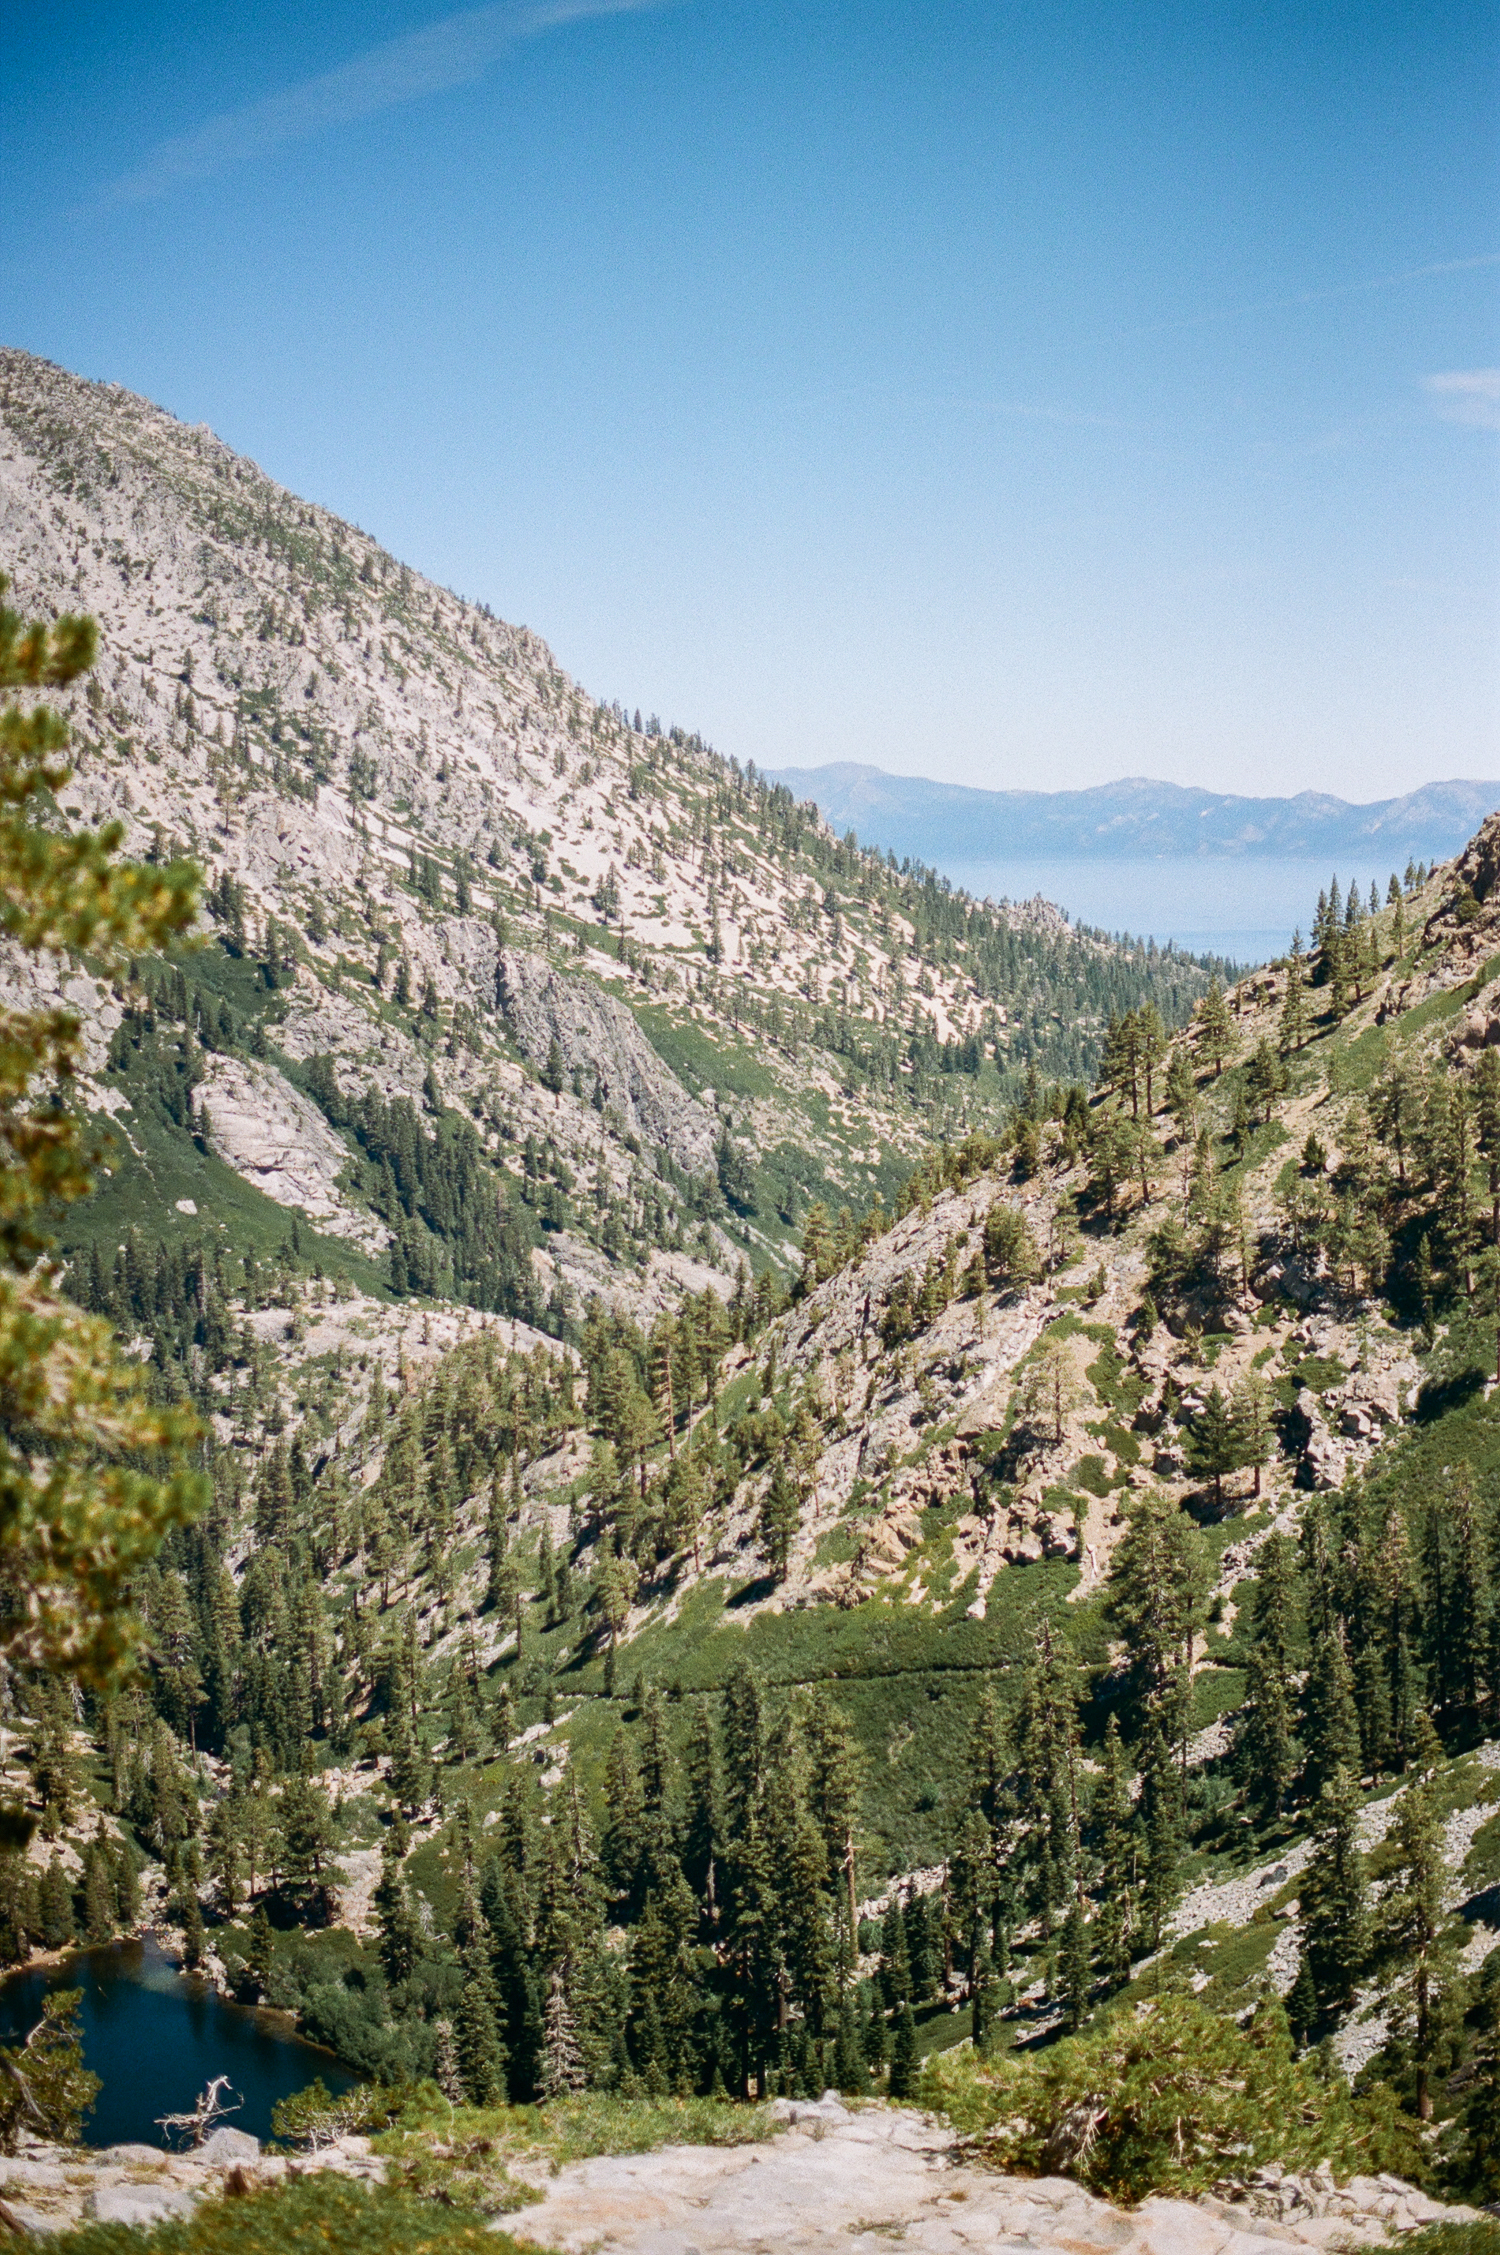 View of Eagle Lake & Lake Tahoe